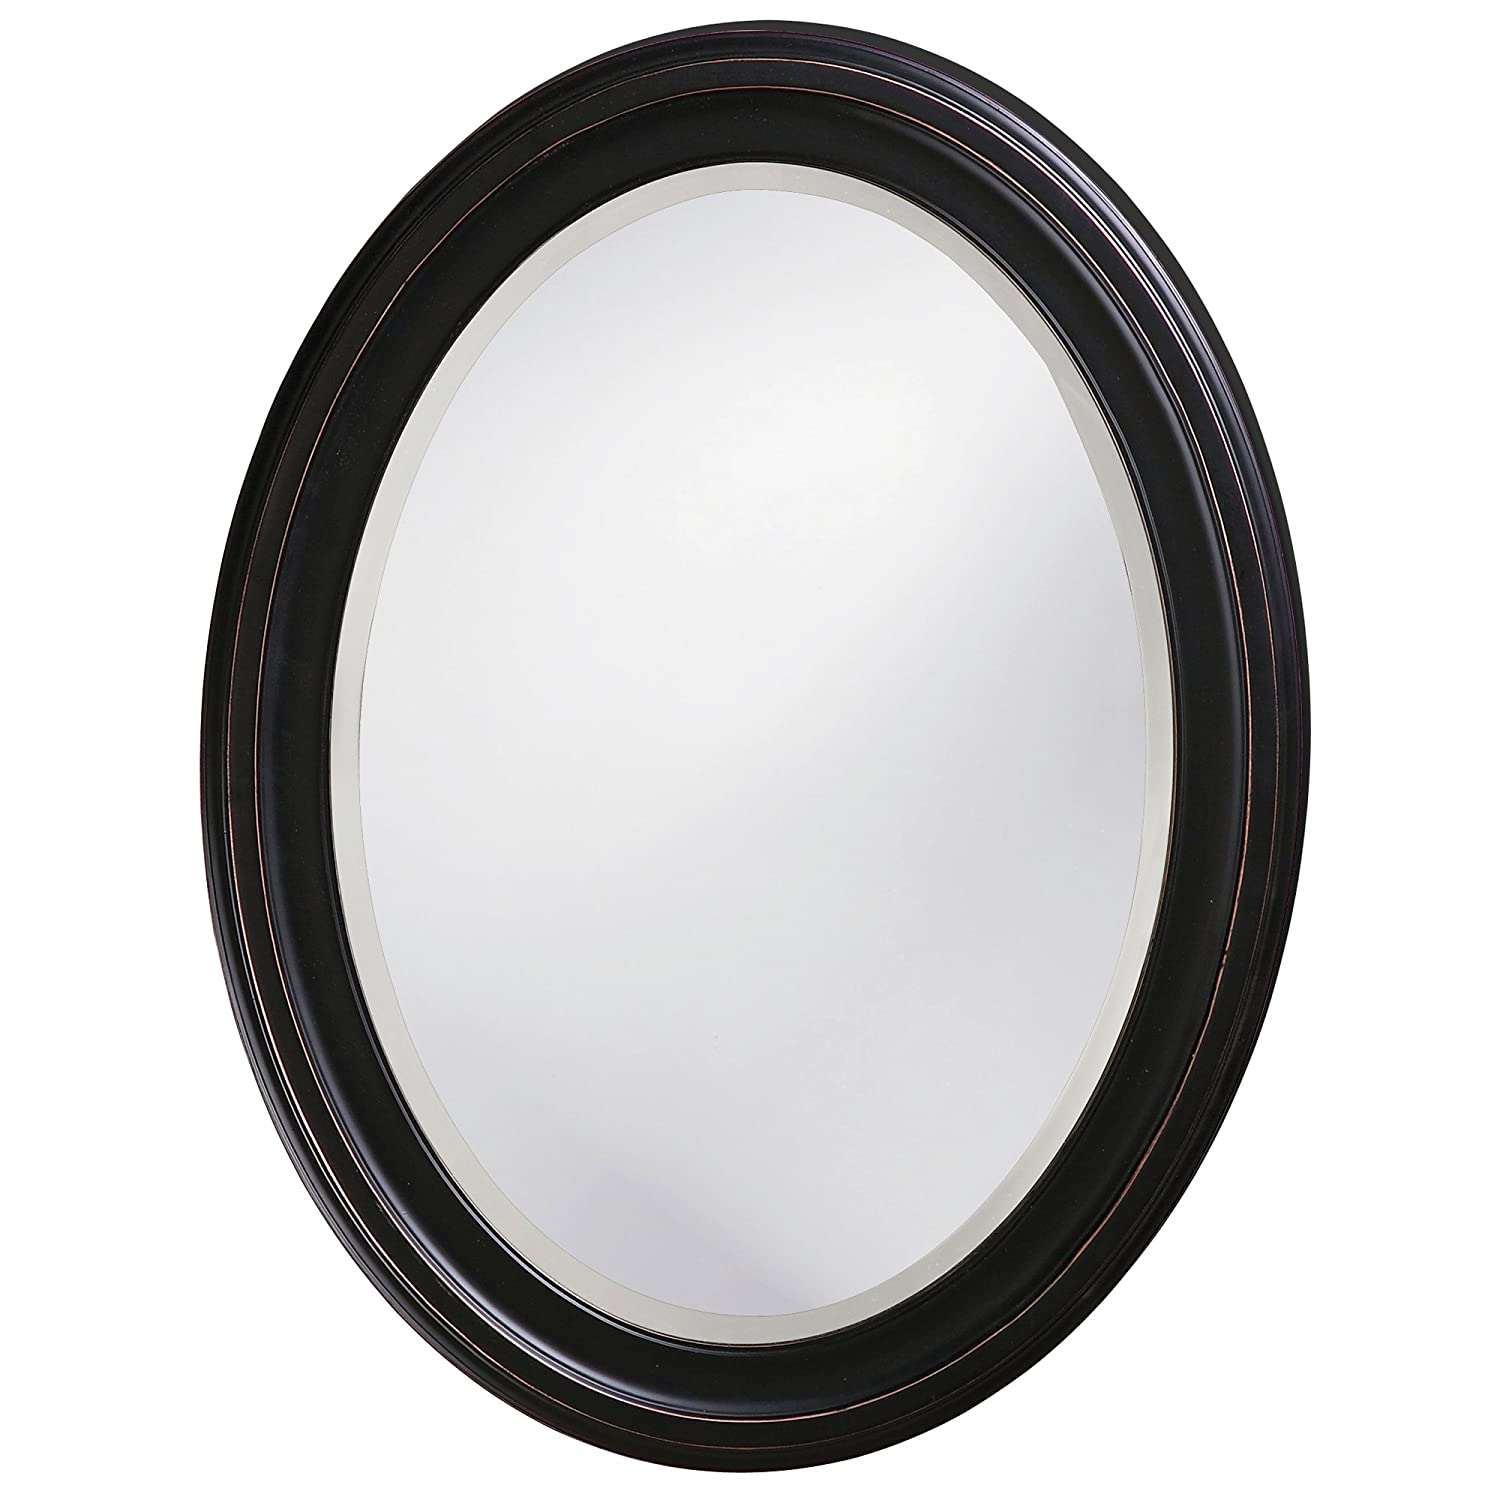 Howard Elliott George Oval Hanging Wall Mirror, Oil Rubbed Bronze Wood Frame